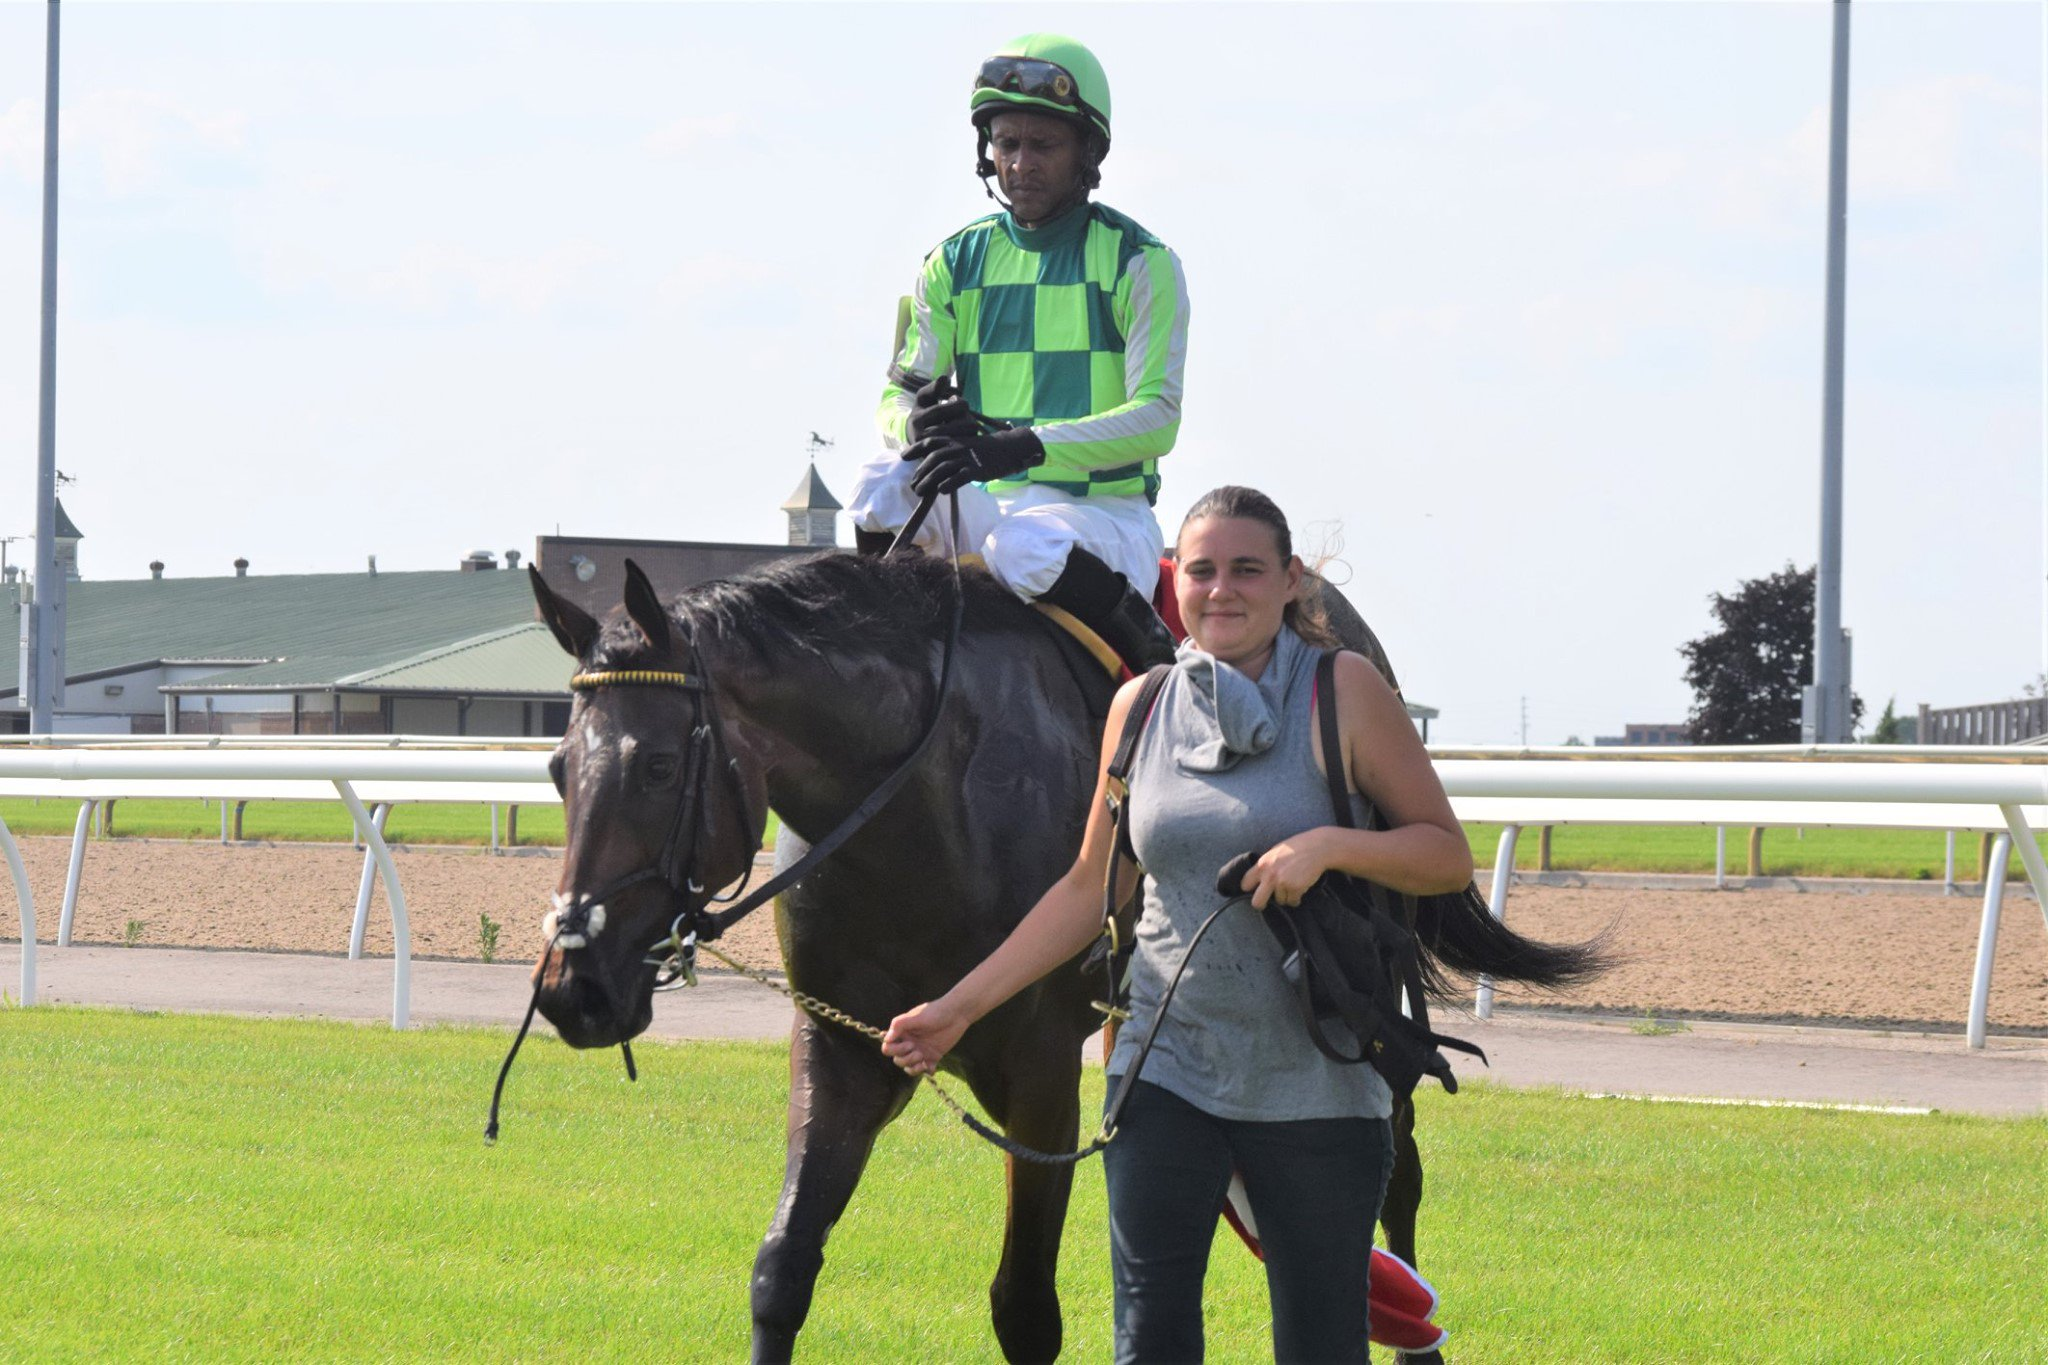 Crystal Todd with a jockey on a horse on a racetrack.